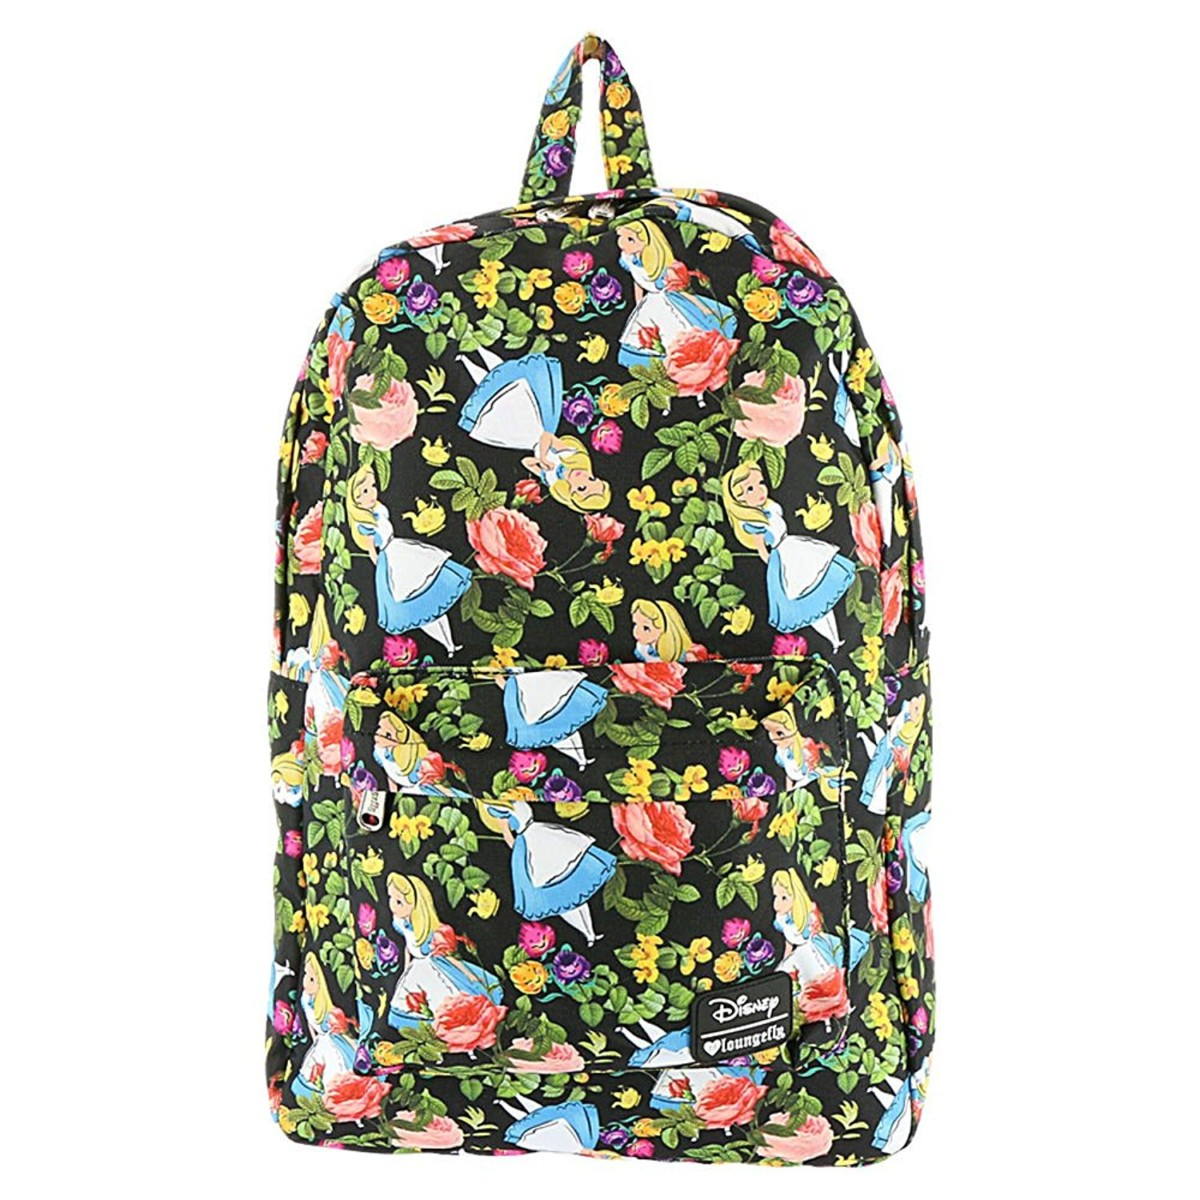 70a6f4d4500 Loungefly Disney Backpacks From Amazon 3